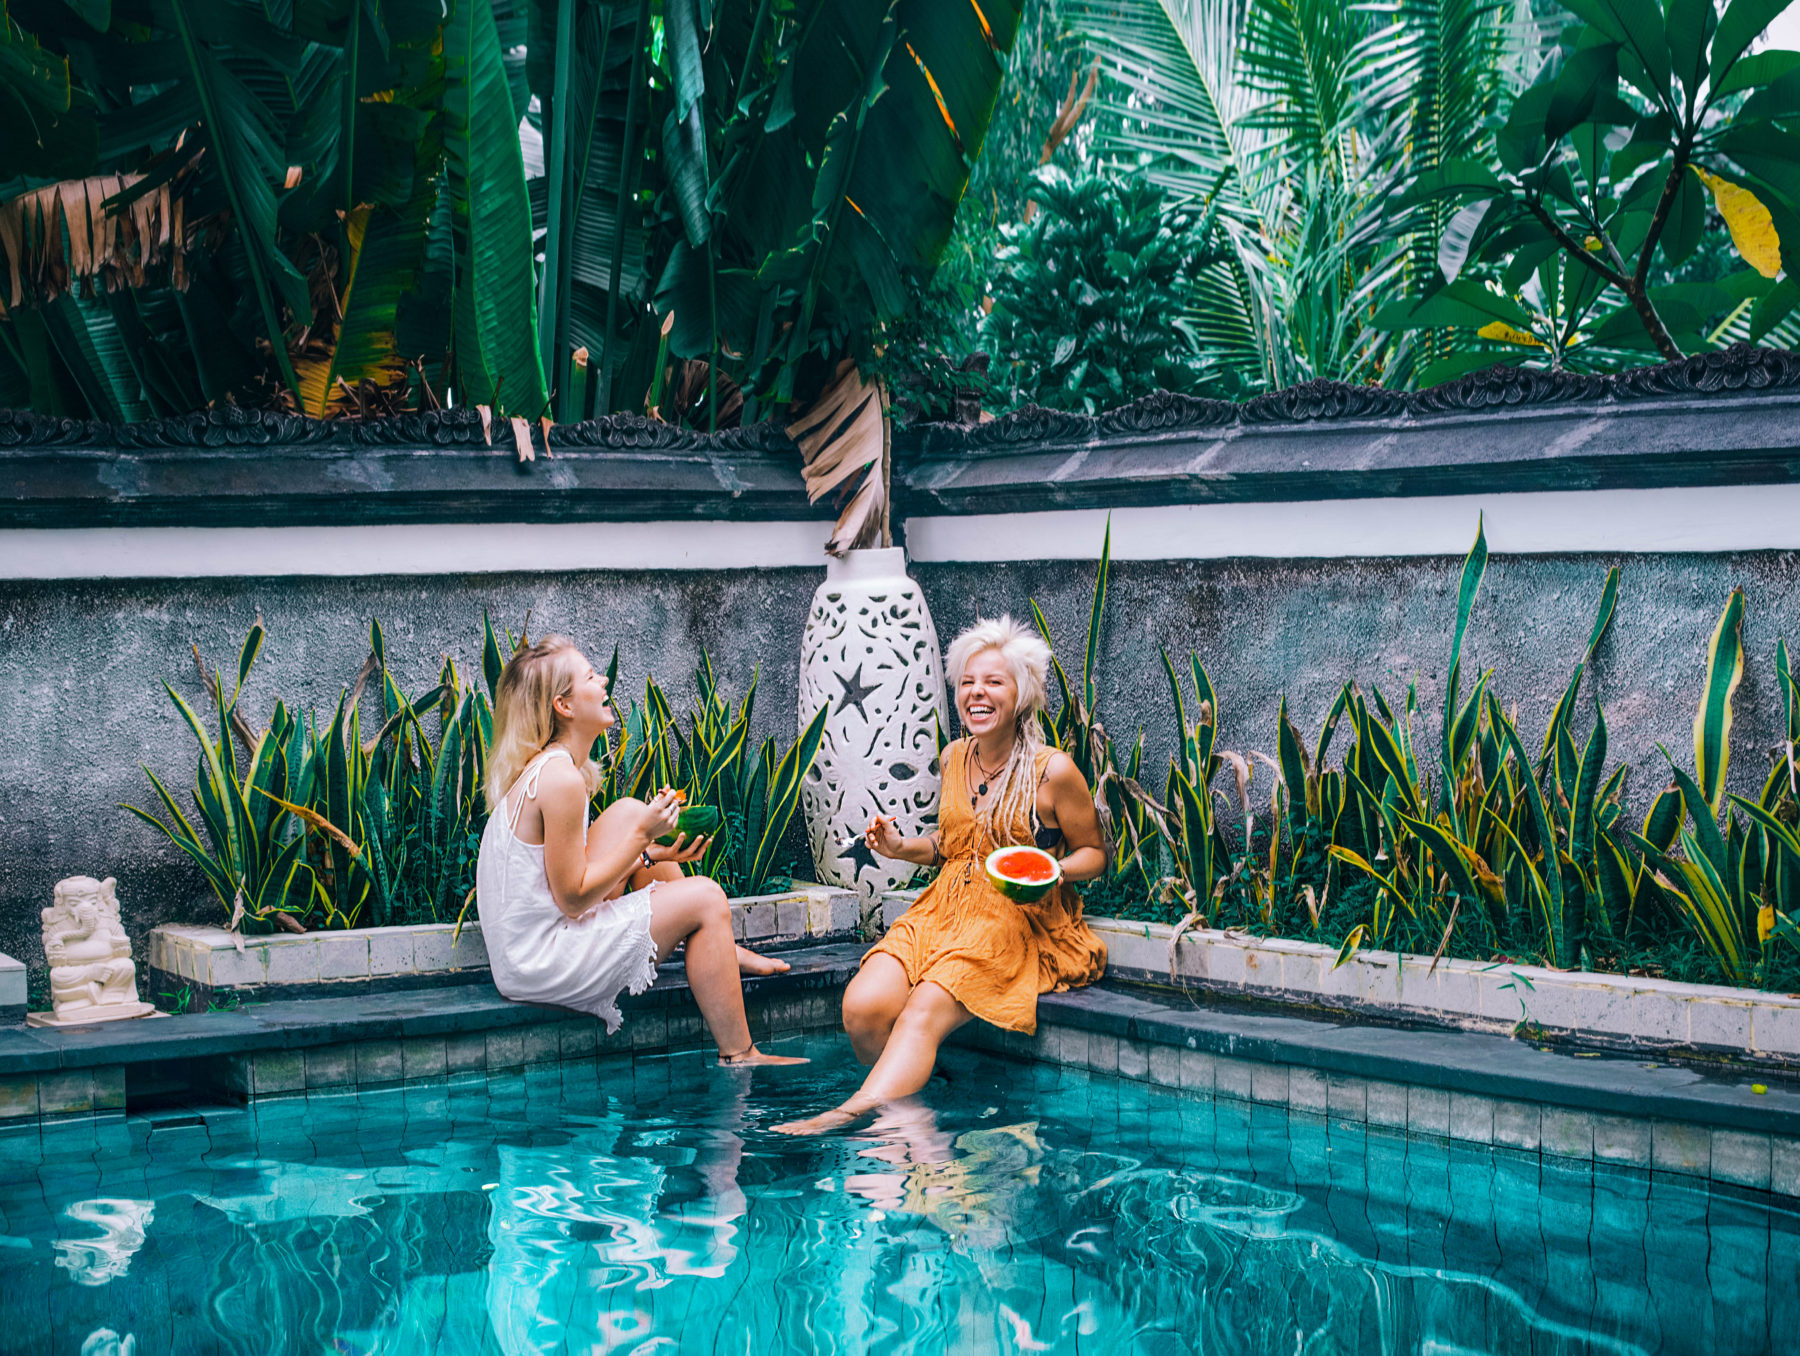 bali friends enjoying life and fresh fruit by the pool while on holidays in indonesia